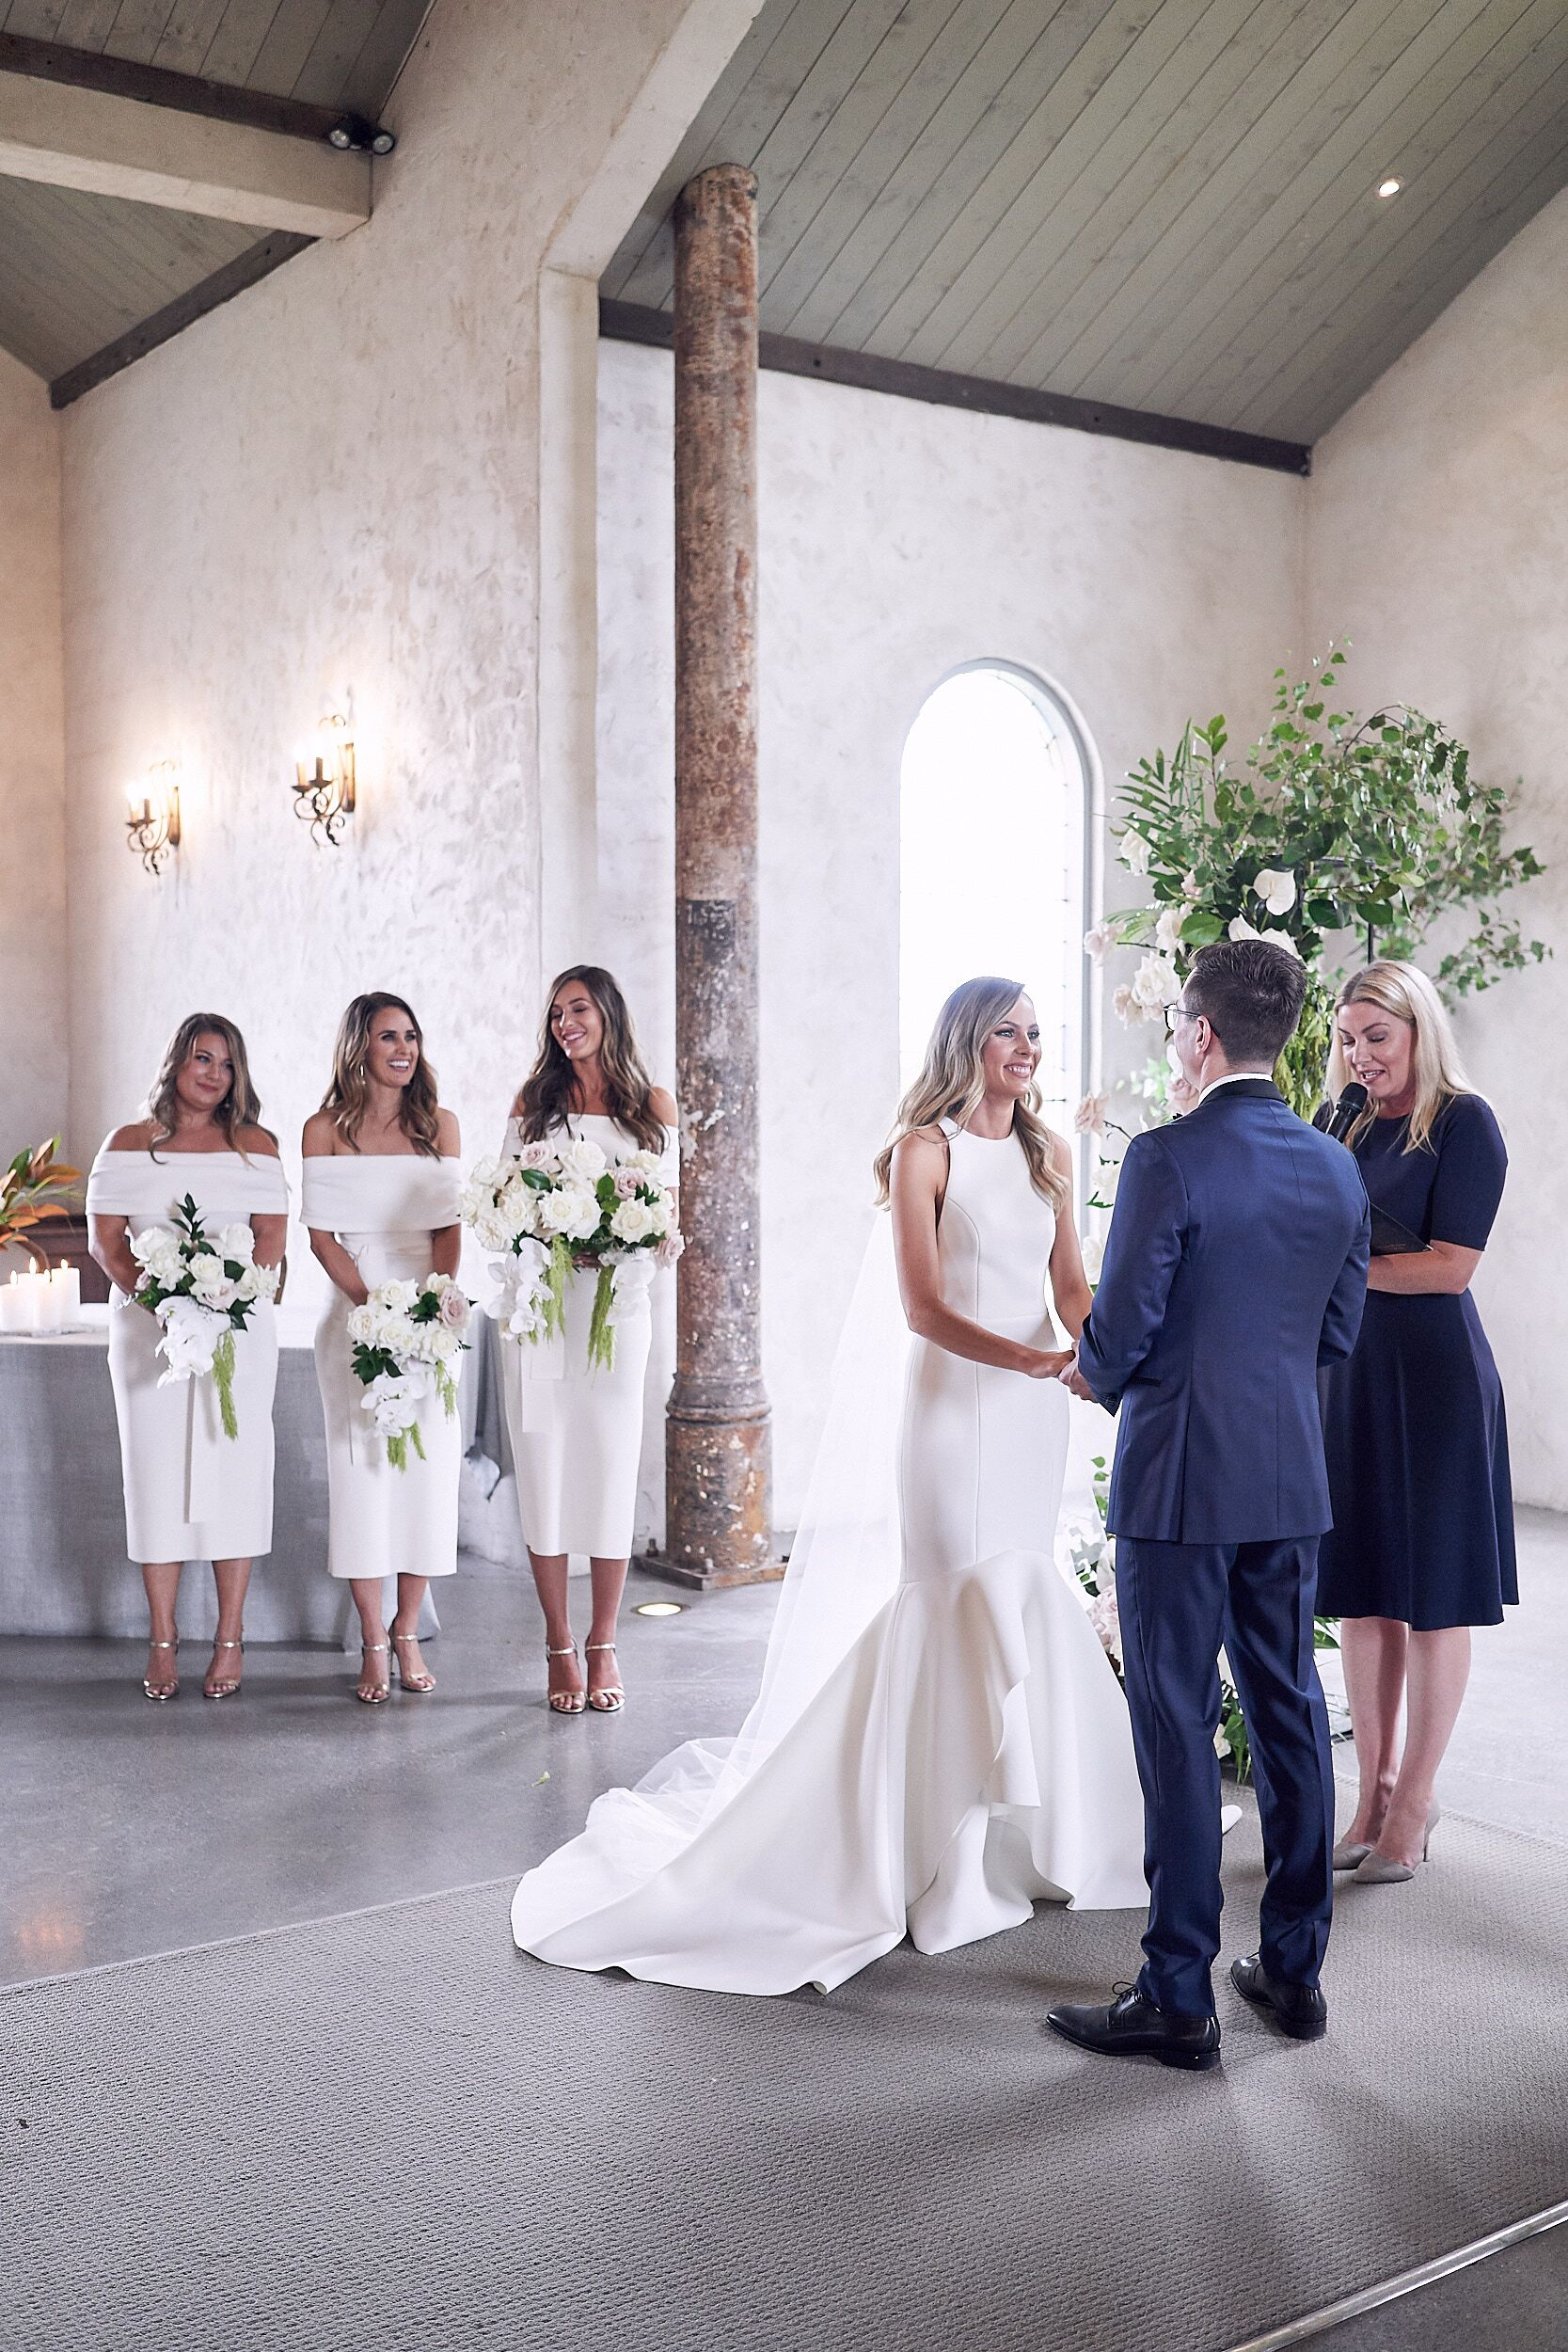 Ally and Dean Wedding on LOVE FIND CO.